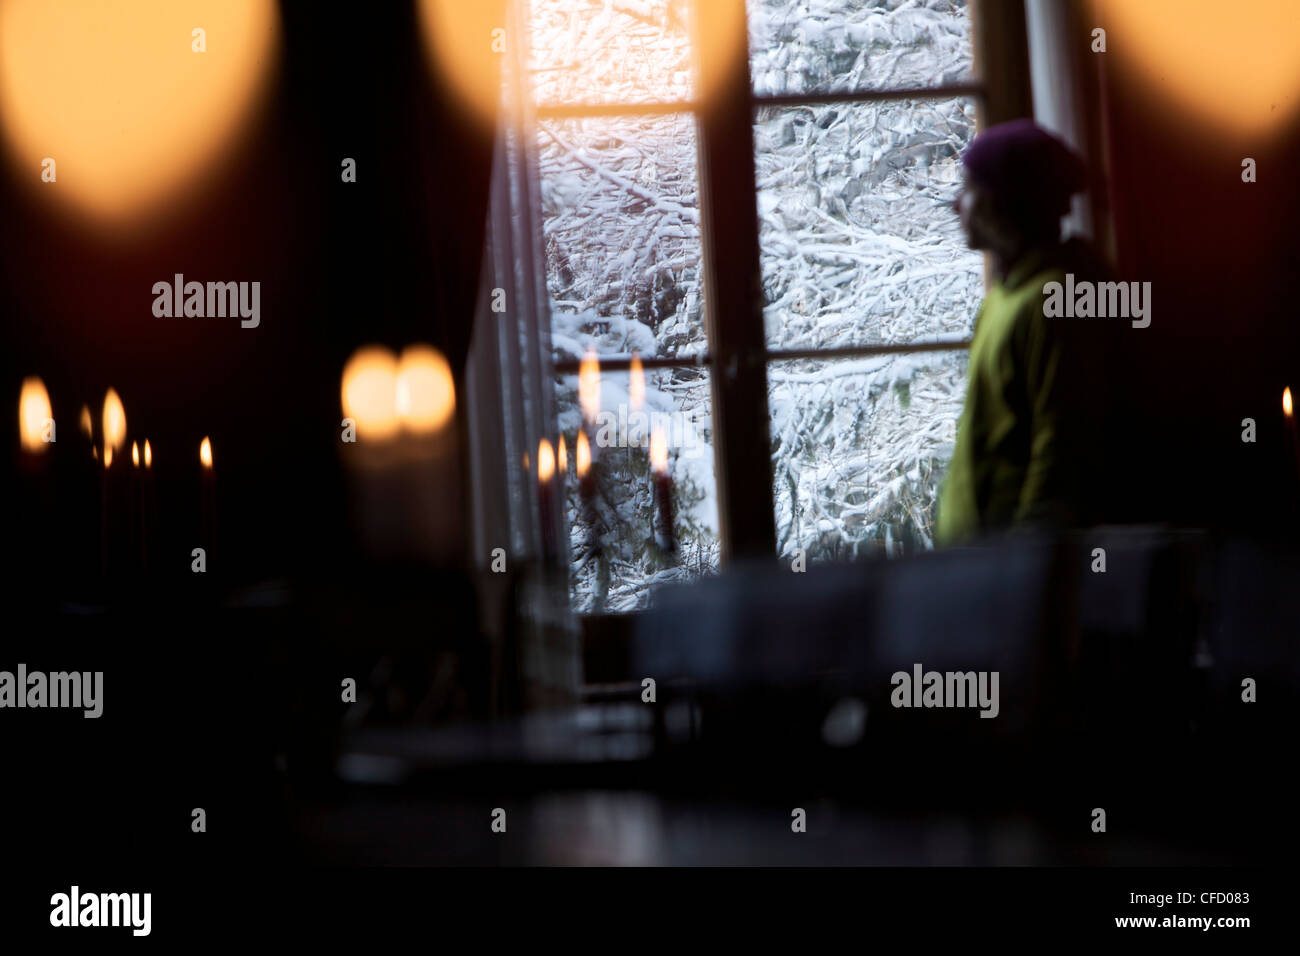 Mid adult man looking out a window of a hostel, Chandolin, Anniviers, Valais, Switzerland Stock Photo